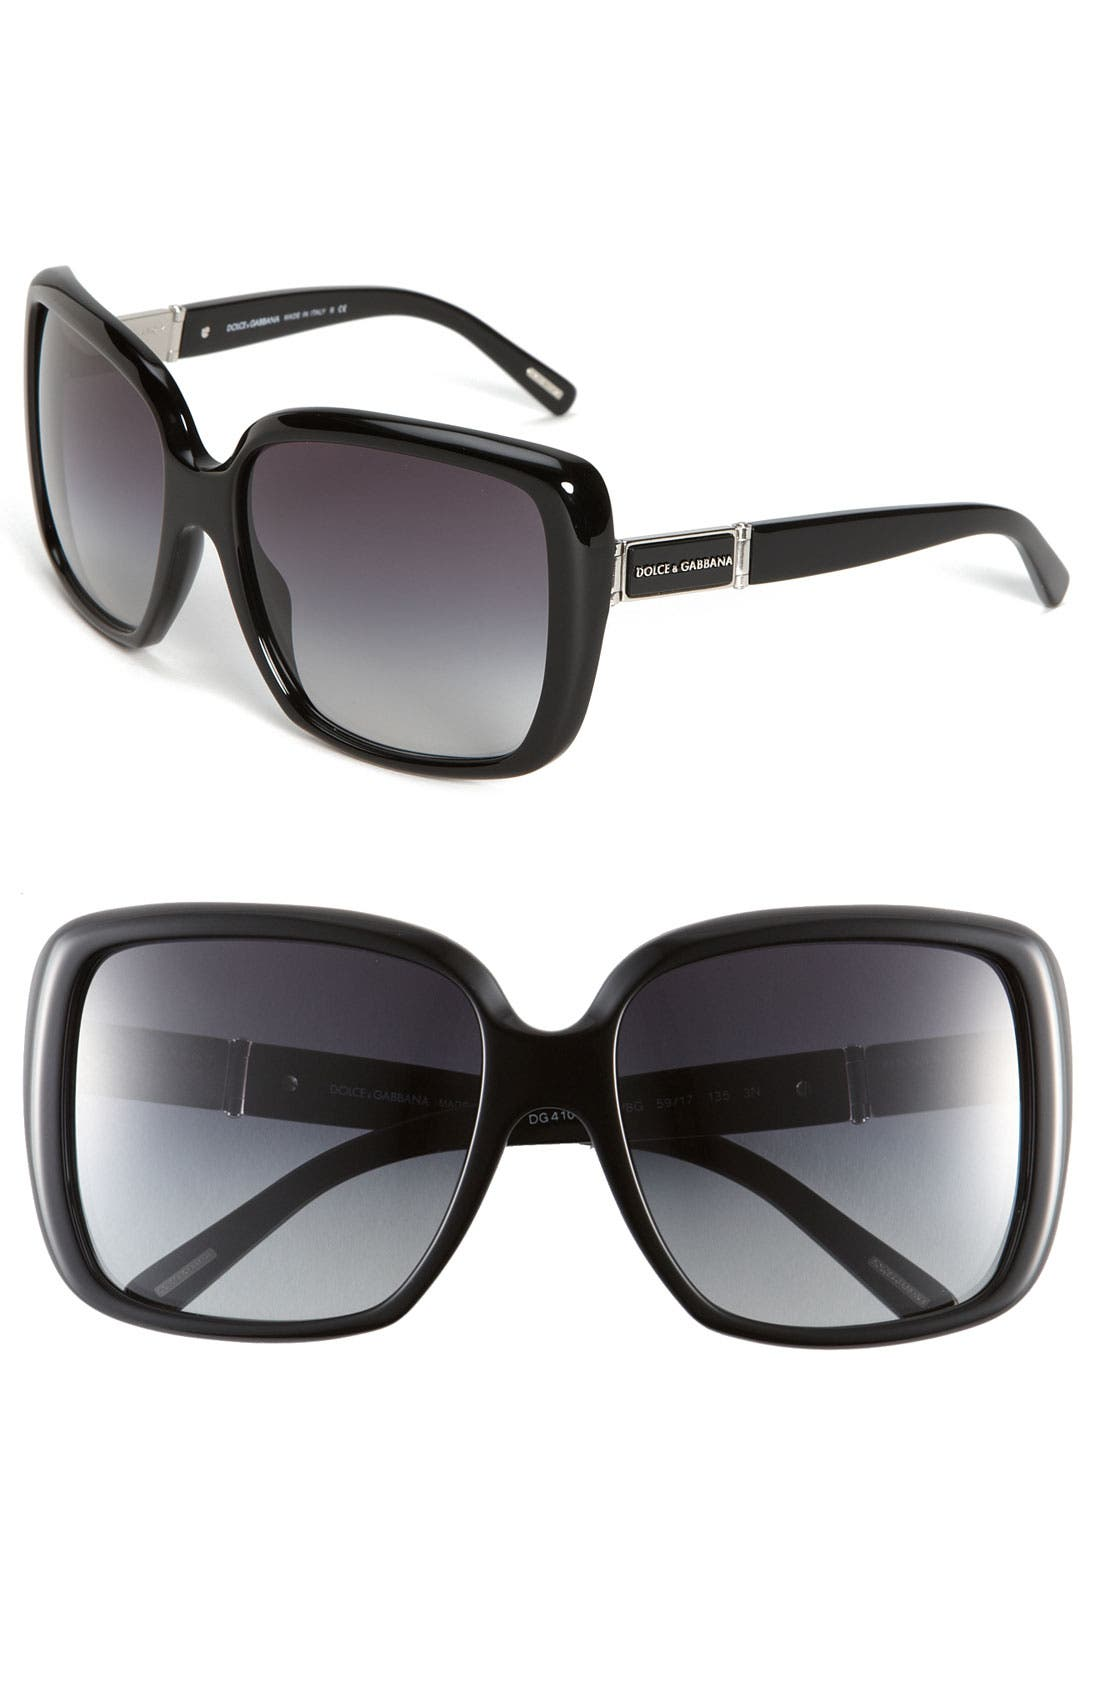 Main Image - Dolce&Gabbana 'Glam - Large' Square Sunglasses